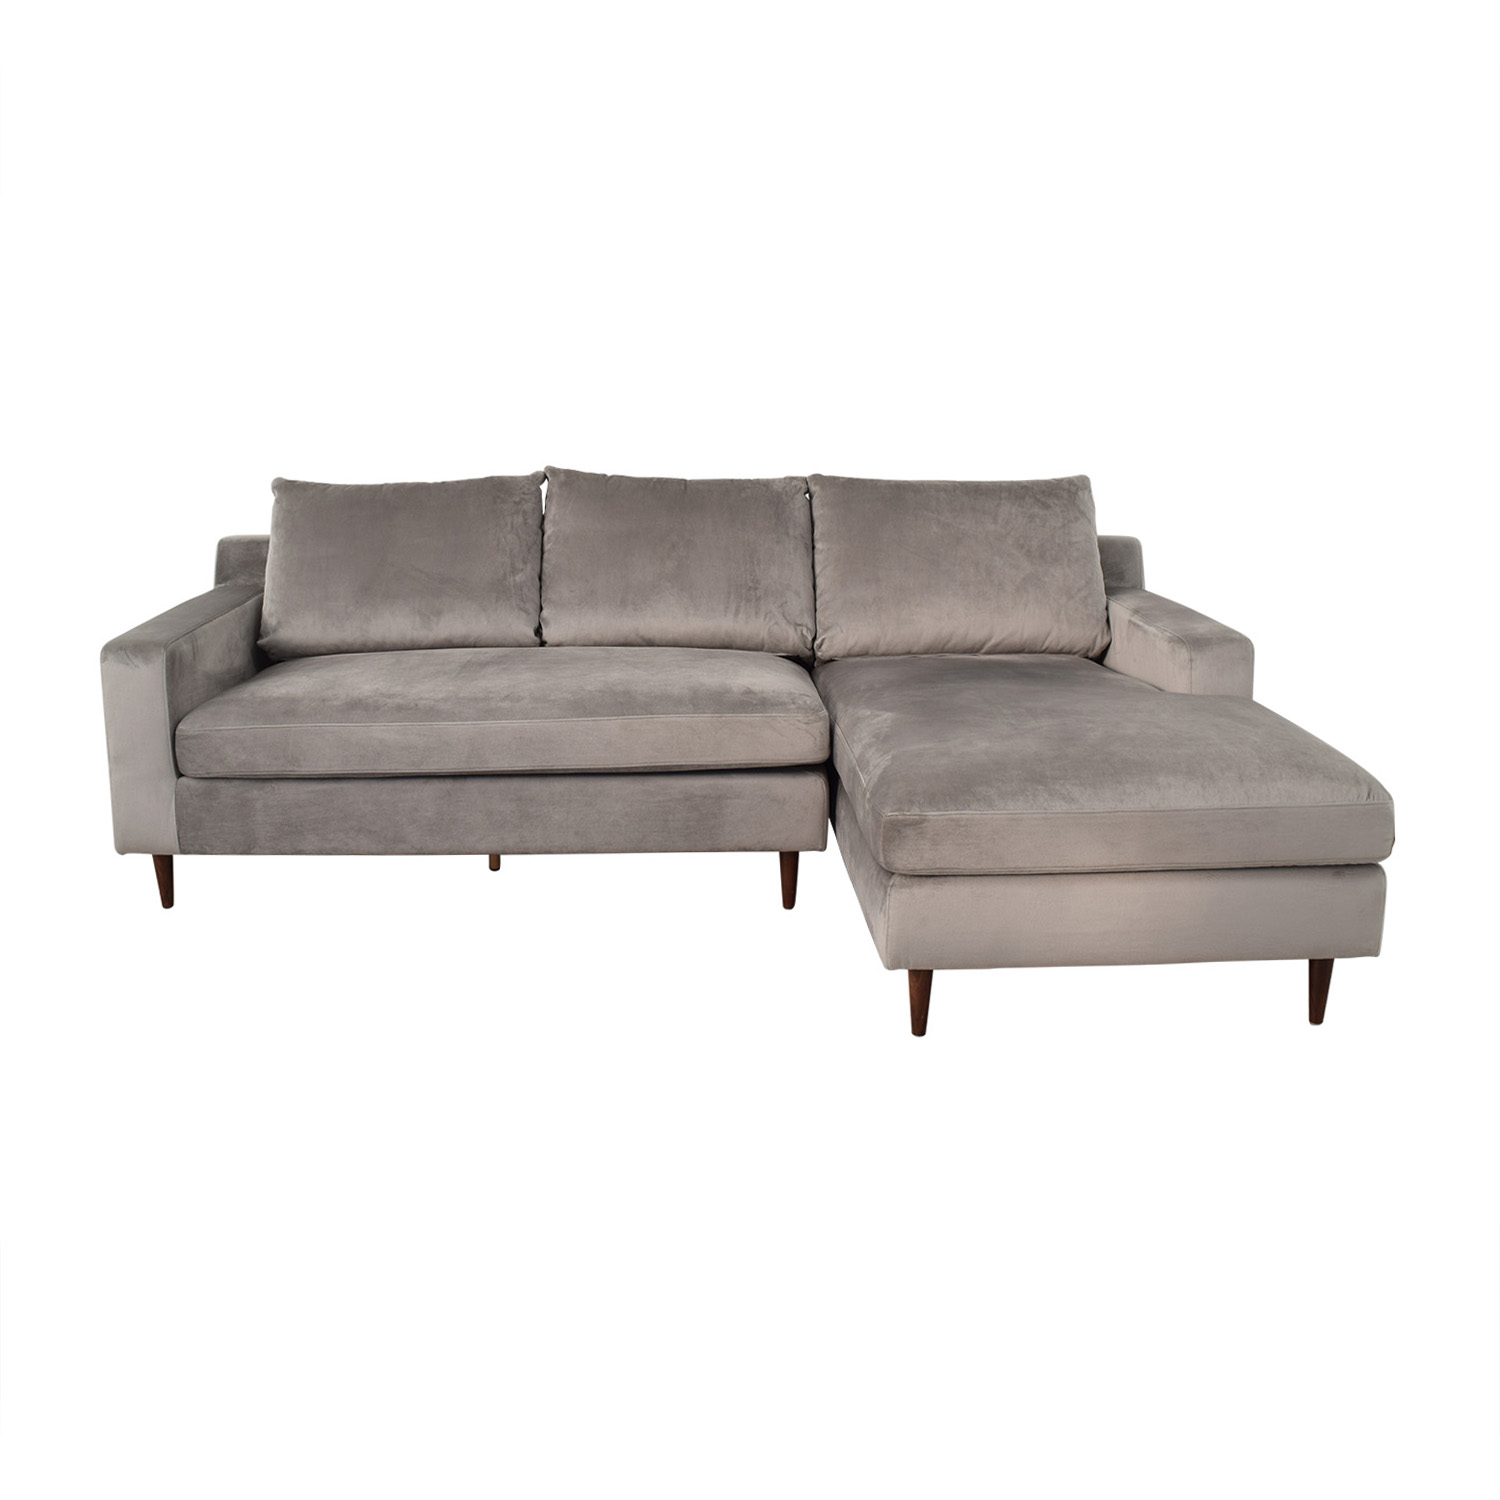 Interior Define Sloan Grey Right Chaise Sectional price